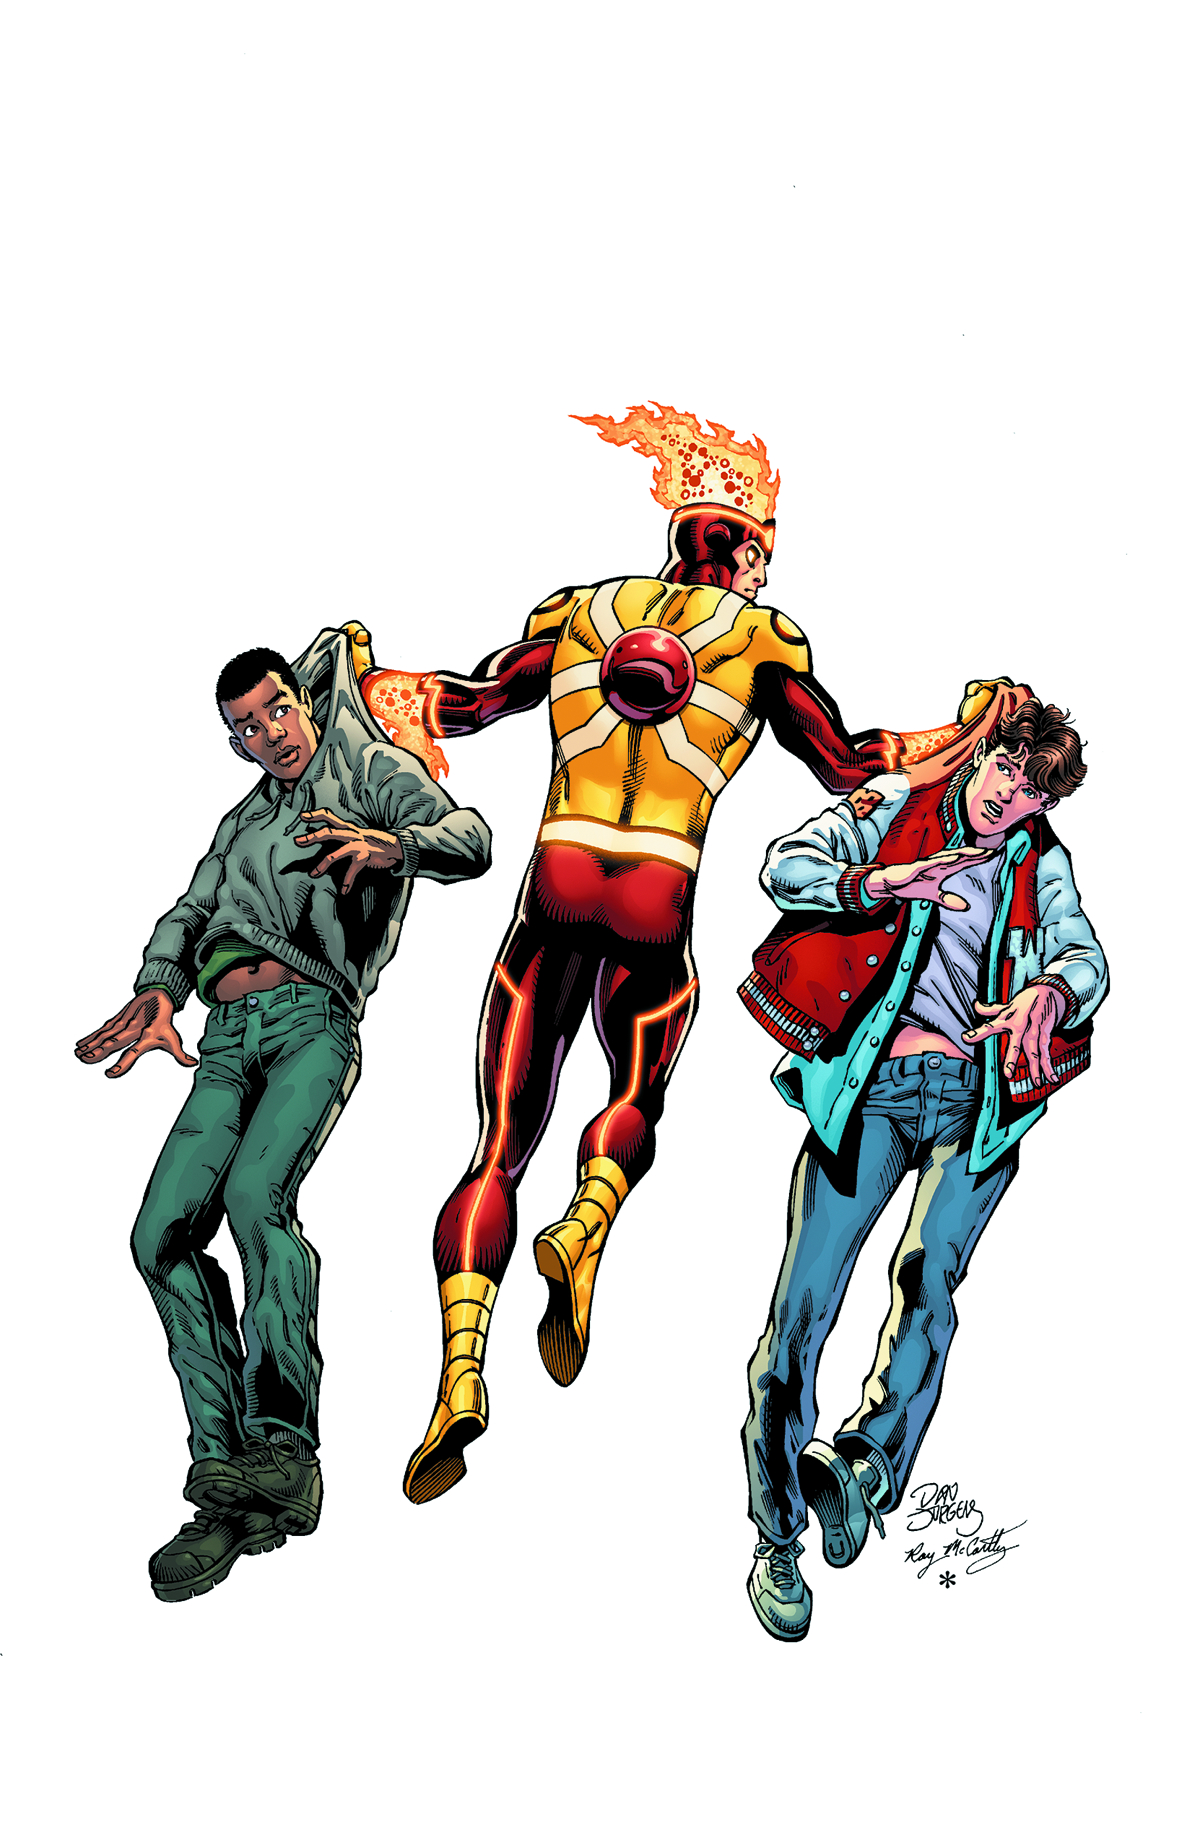 FURY OF FIRESTORM THE NUCLEAR MAN #20